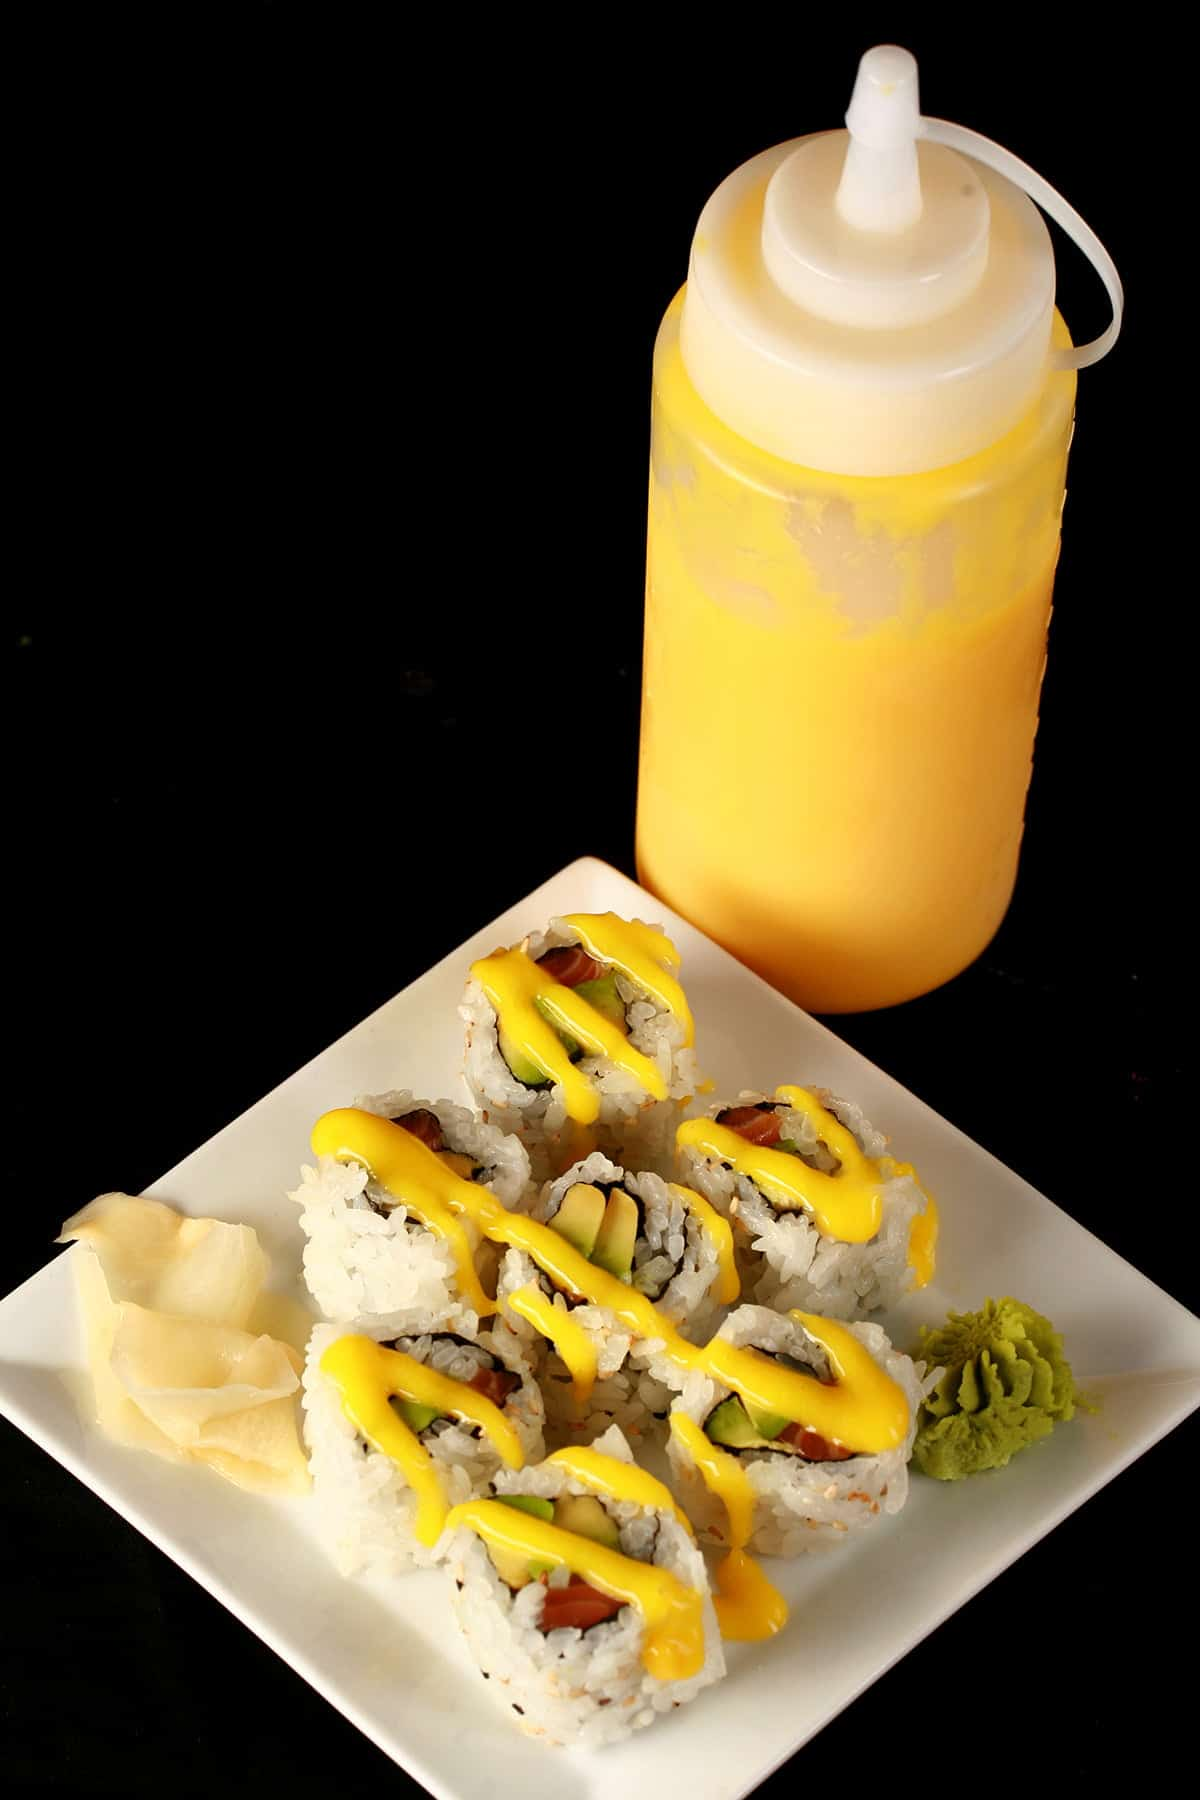 Close up image of a small plate of sushi, with yellow sauce drizzled across it. There is a bottle of yellow sauce - Mango Sauce for Sushi - behind the plate. This is one of 3 Sushi Sauce Recipes on this post.